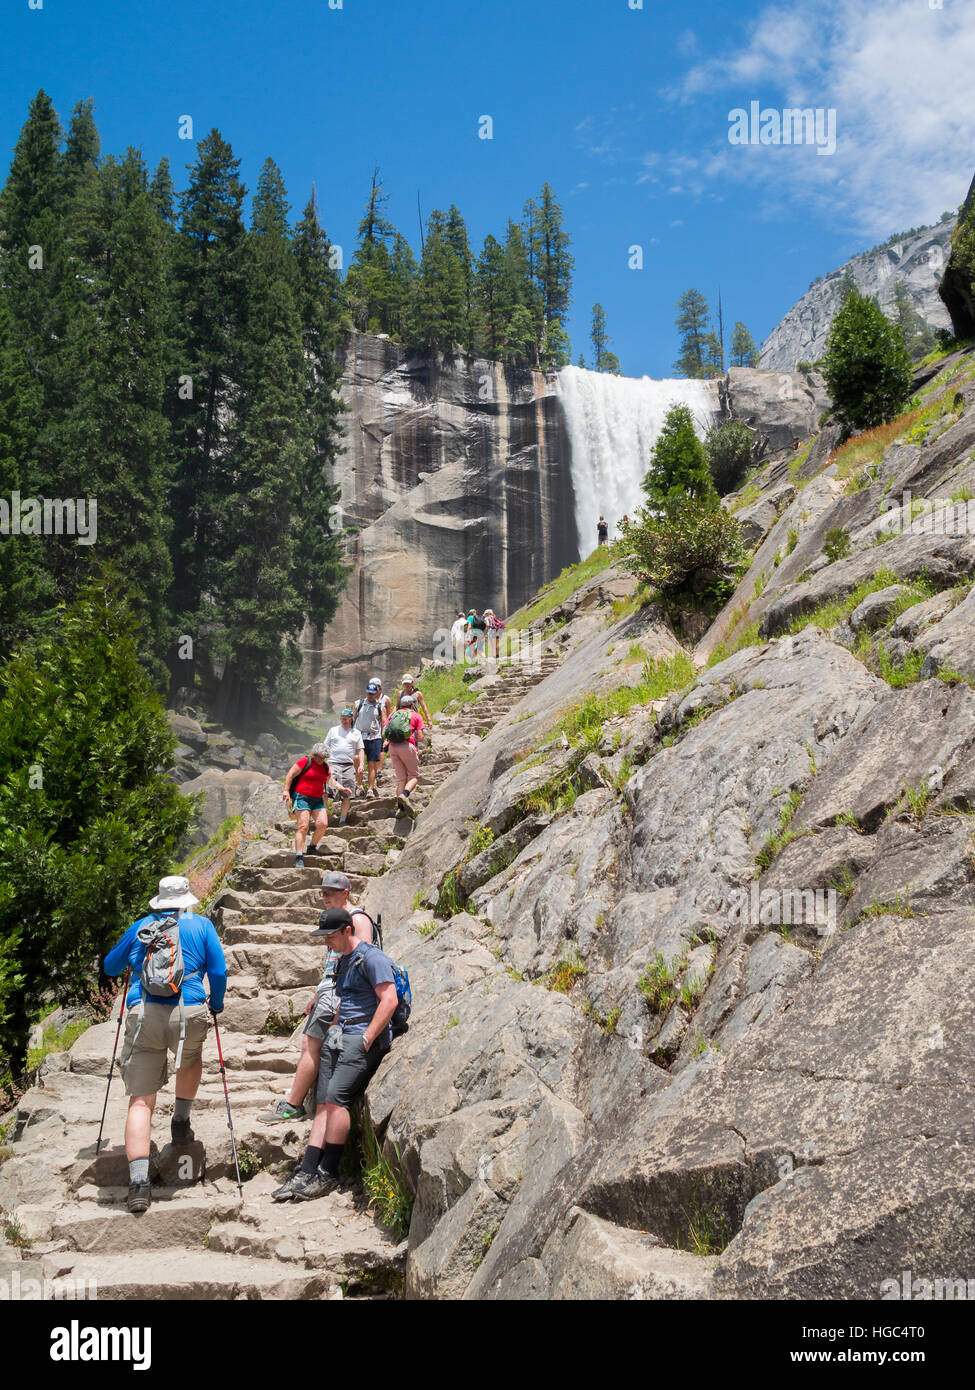 Going up Yosemite National Park High Sierra Lop Trail - Stock Image